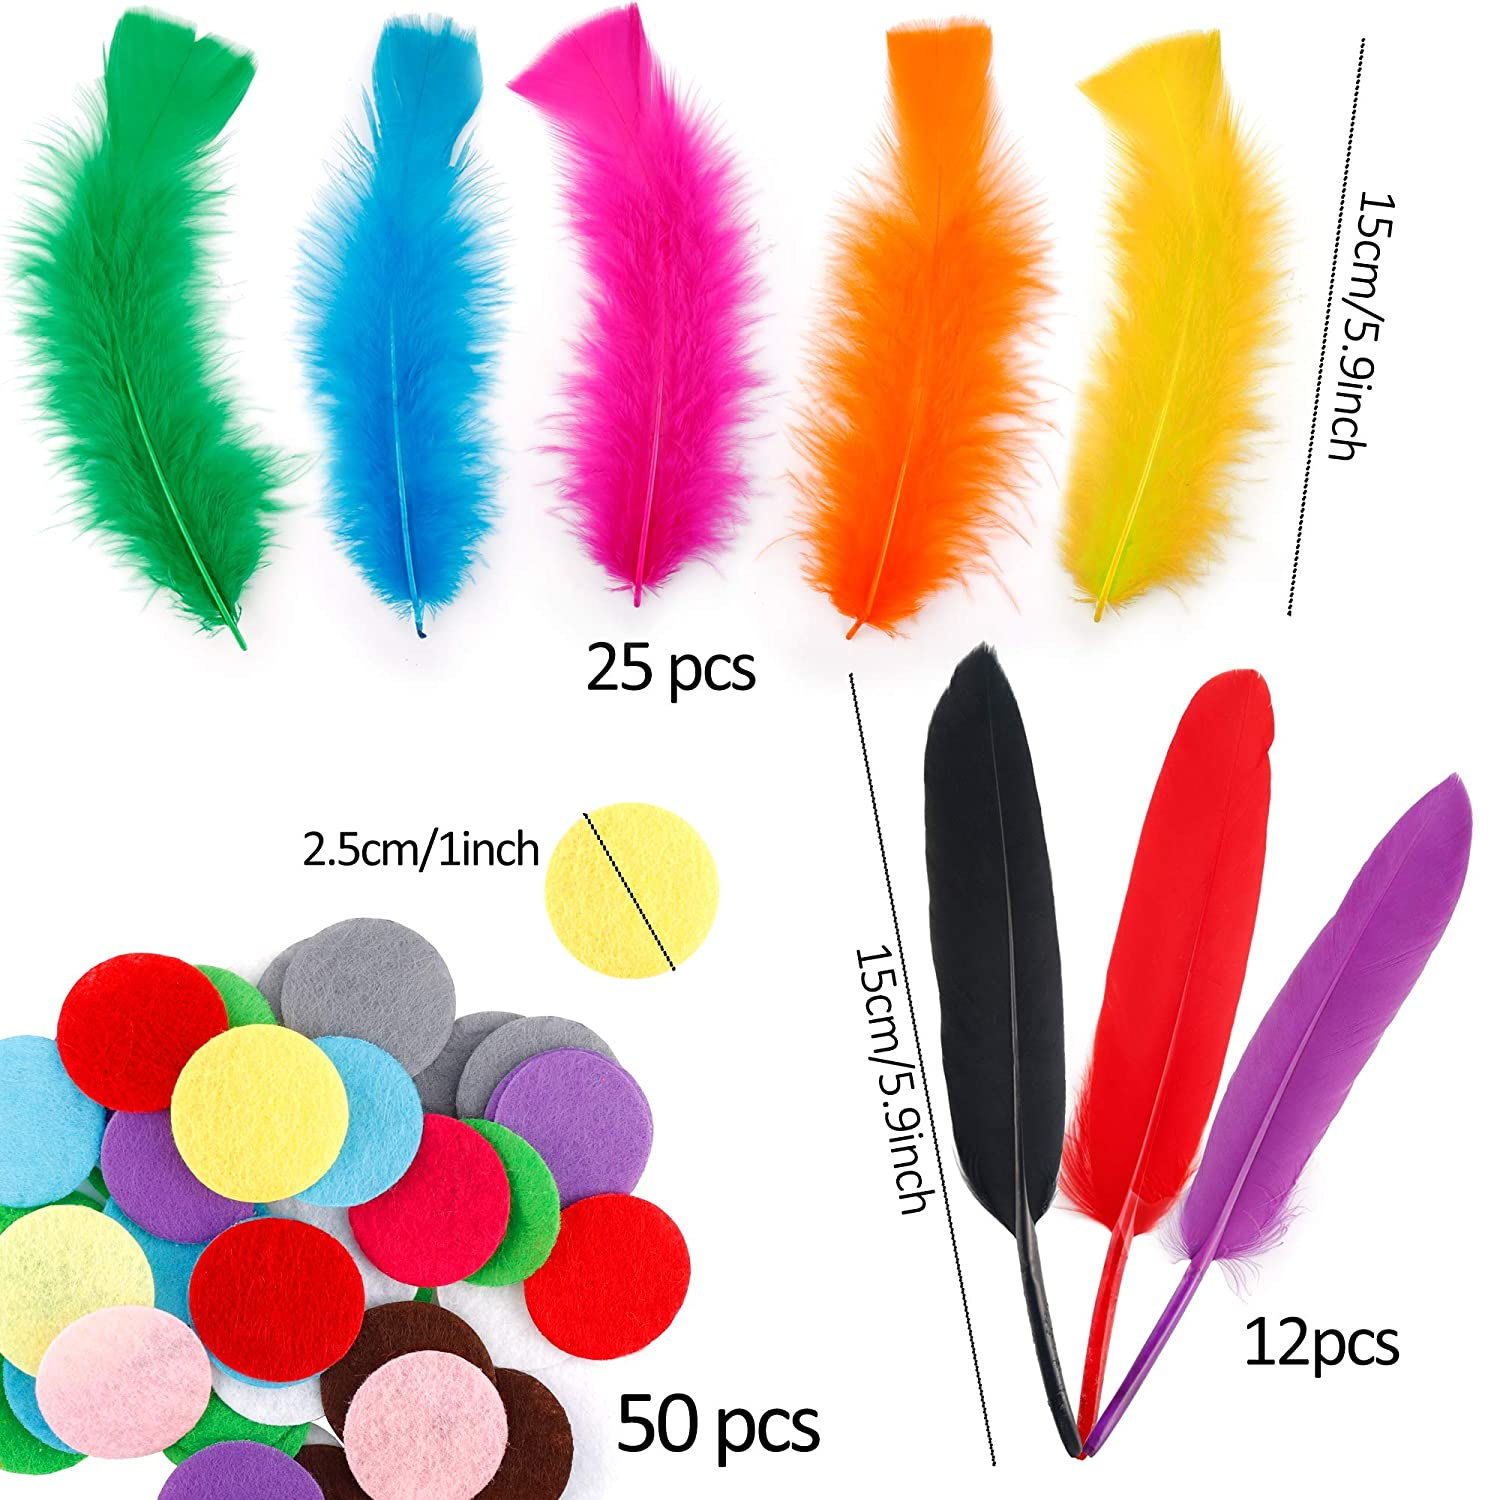 JANYUN Pipe Cleaners Craft Supplies Kit,Includes Chenille Stems Wiggle Googly Eyes Pom Poms Feathers for DIY